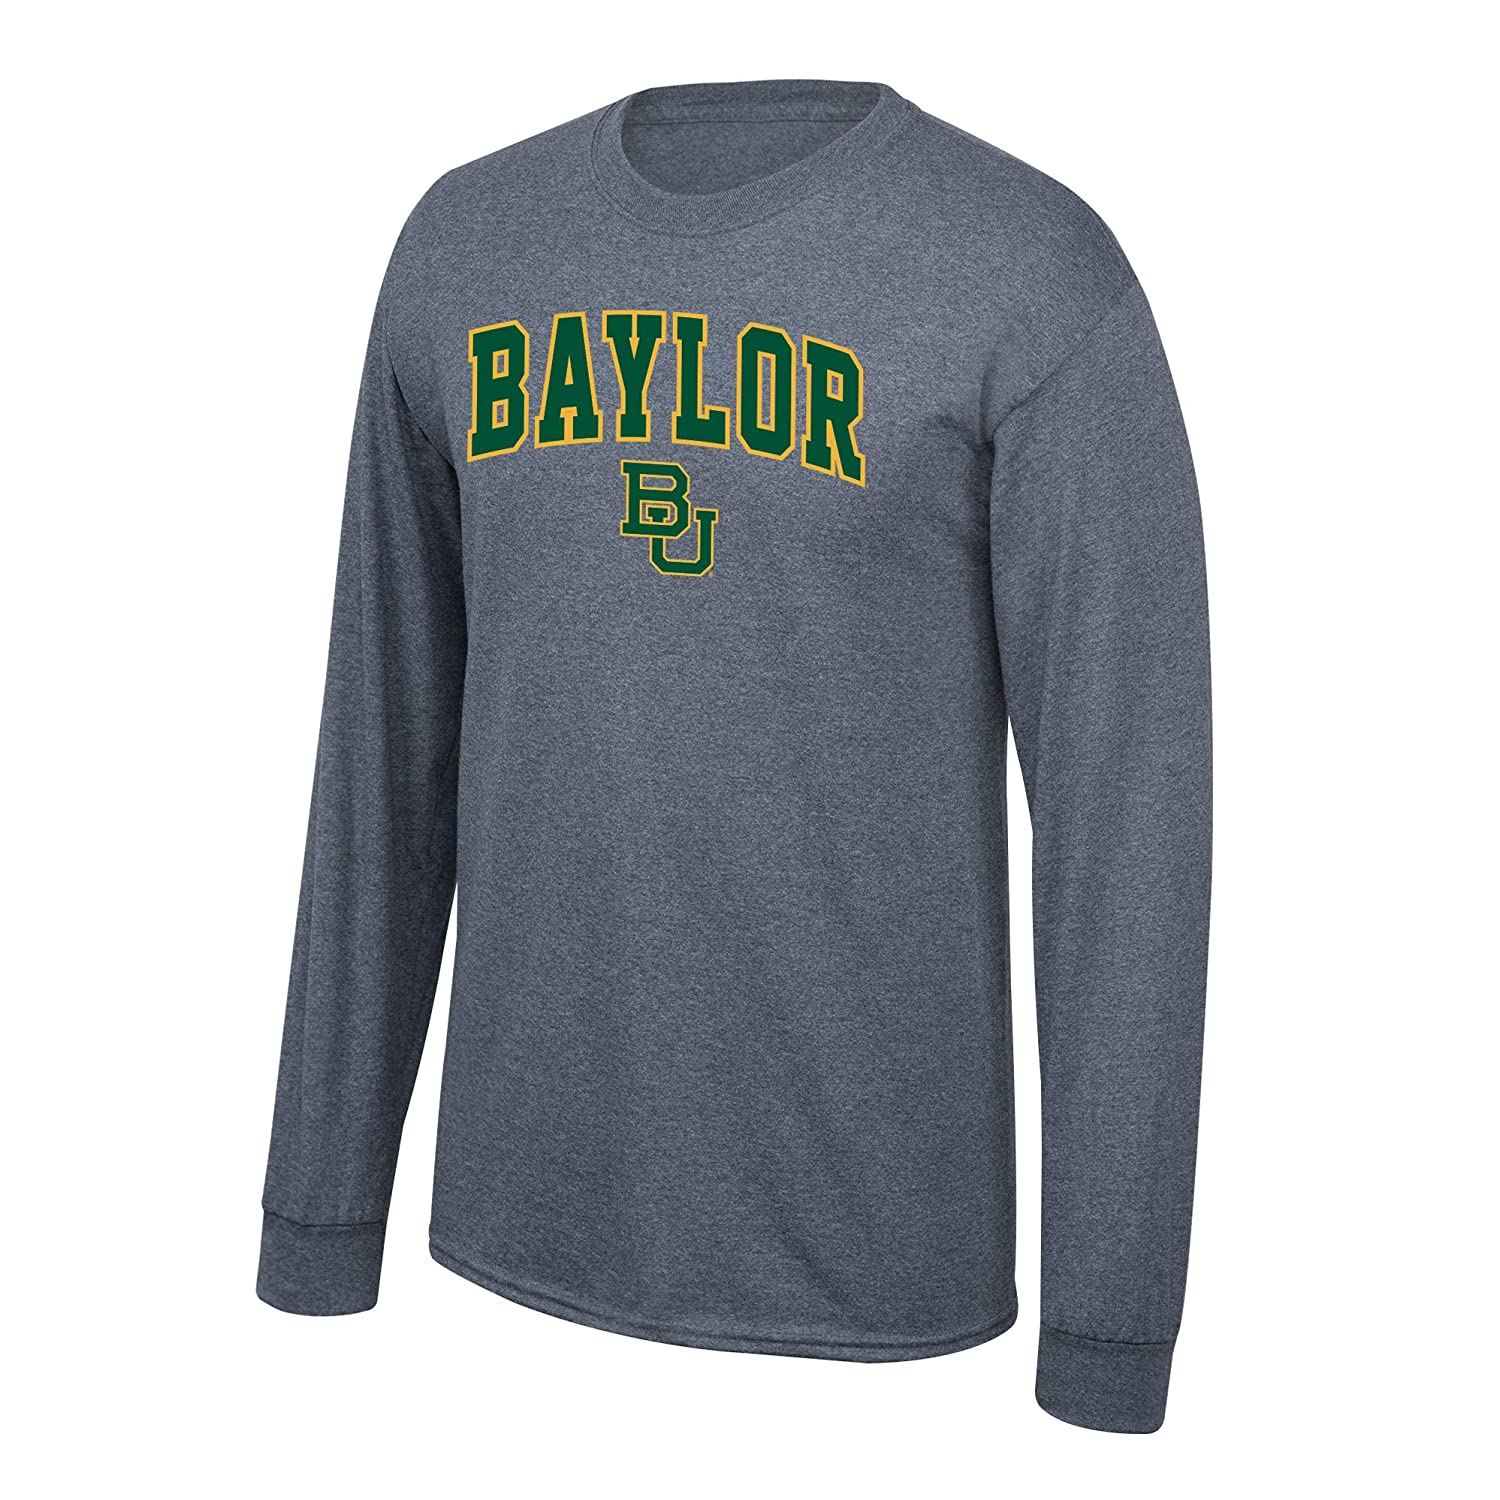 Elite Fan Shop NCAA Mens Baylor Bears Long Sleeve Shirt Dark Heather Arch Baylor Bears Dark Heather Medium